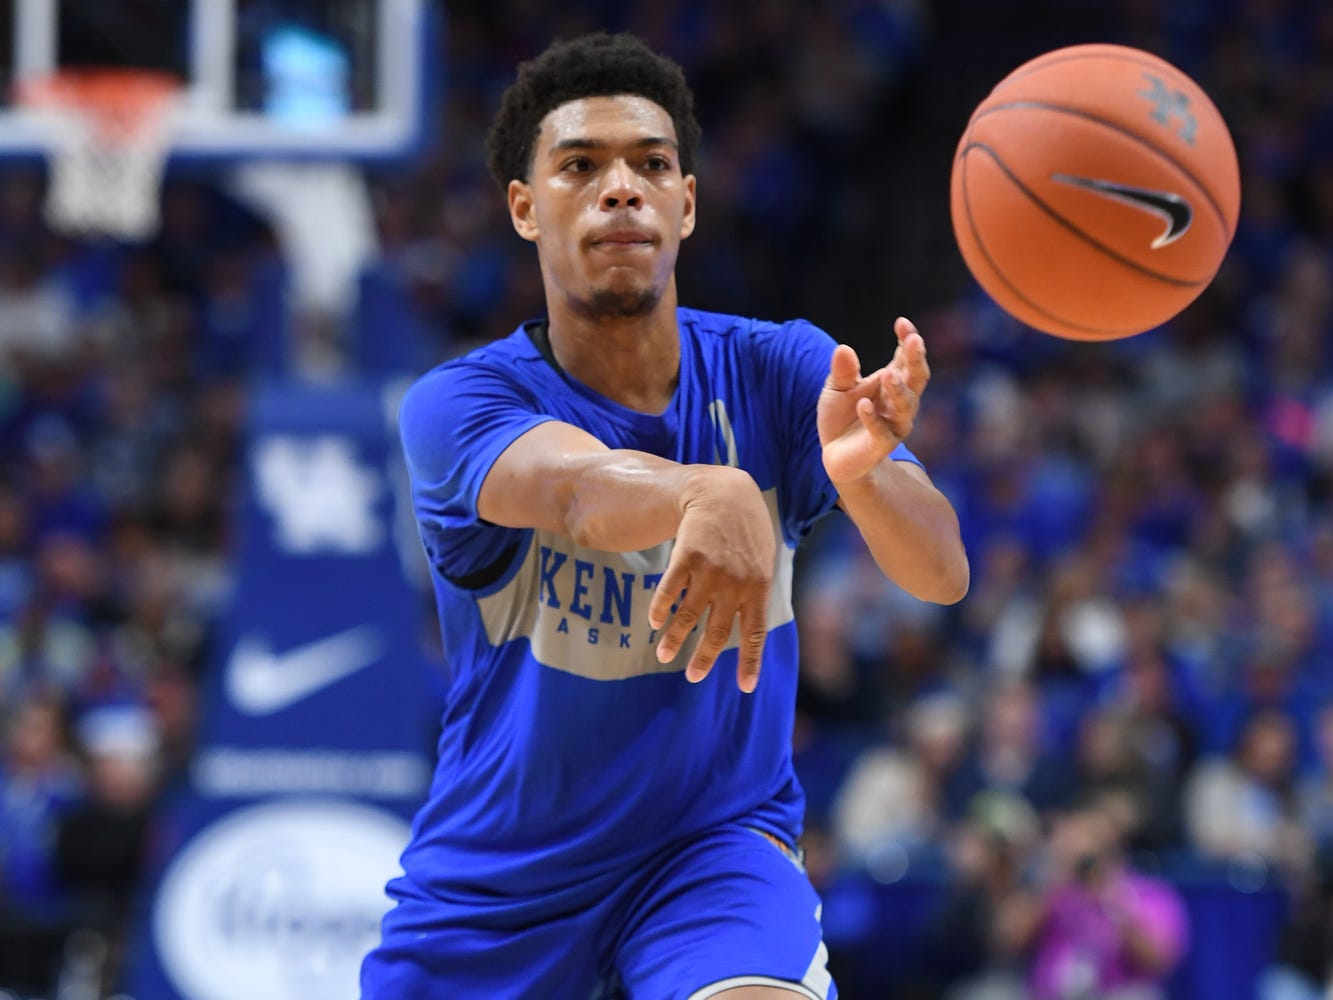 UK G Quade Green passes the ball during the University of Kentucky mens basketball Blue/White game at Rupp Arena in Lexington, Kentucky on Sunday, October 21, 2018.